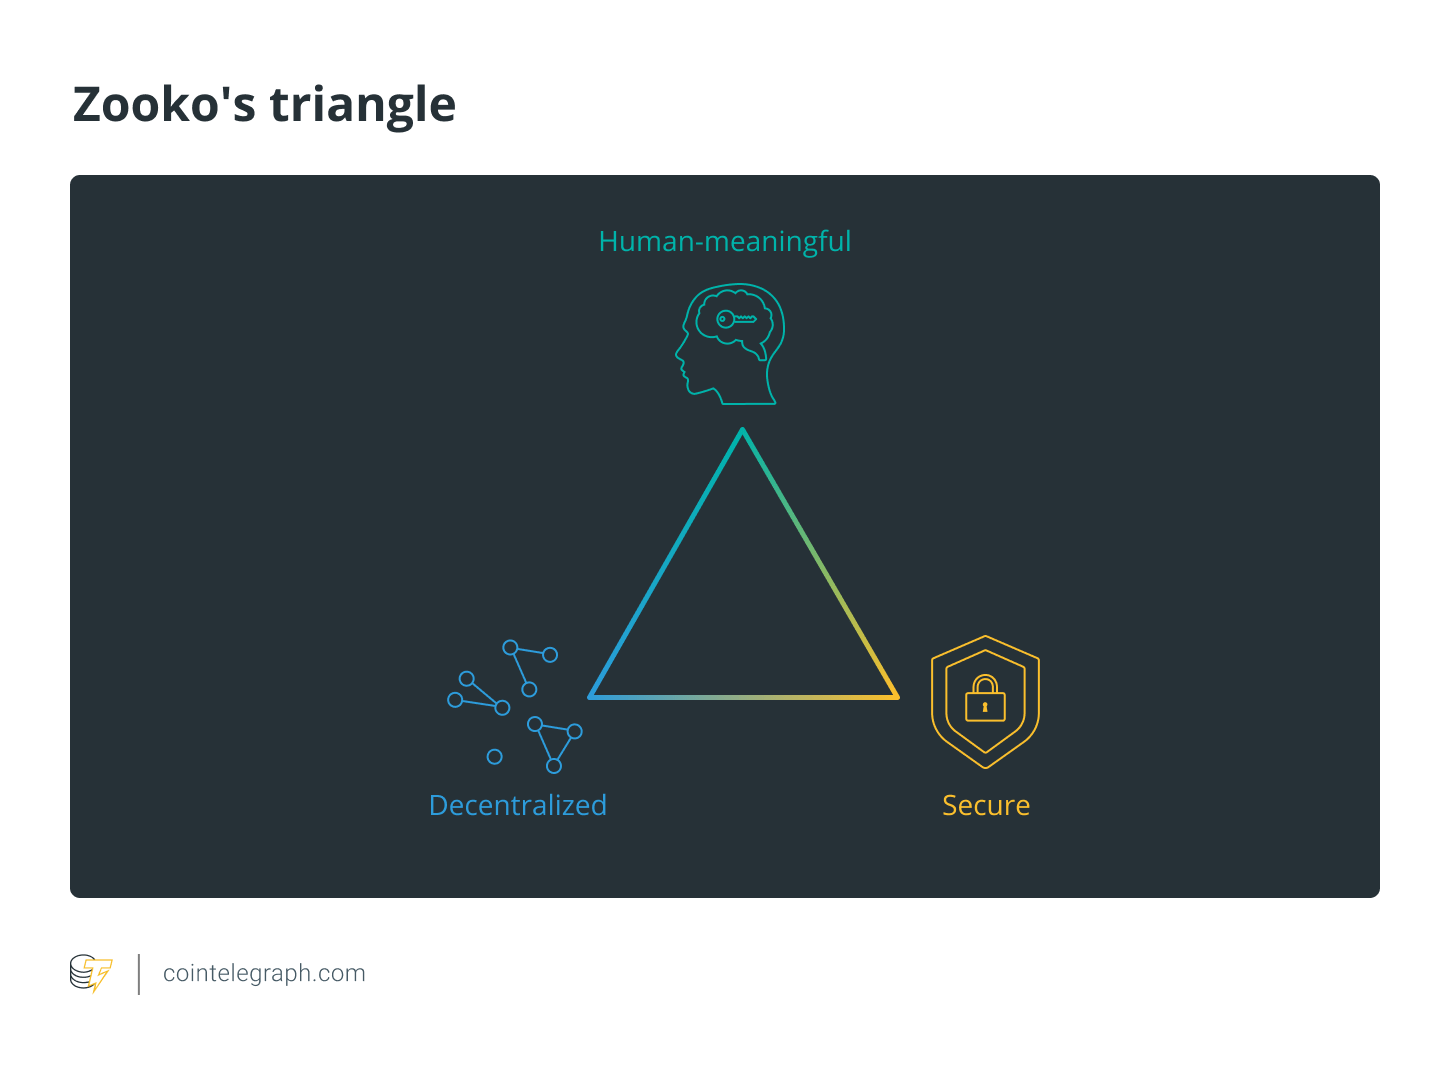 Zooko's Triangle trilemma for decentralized human-meaningful secure name services